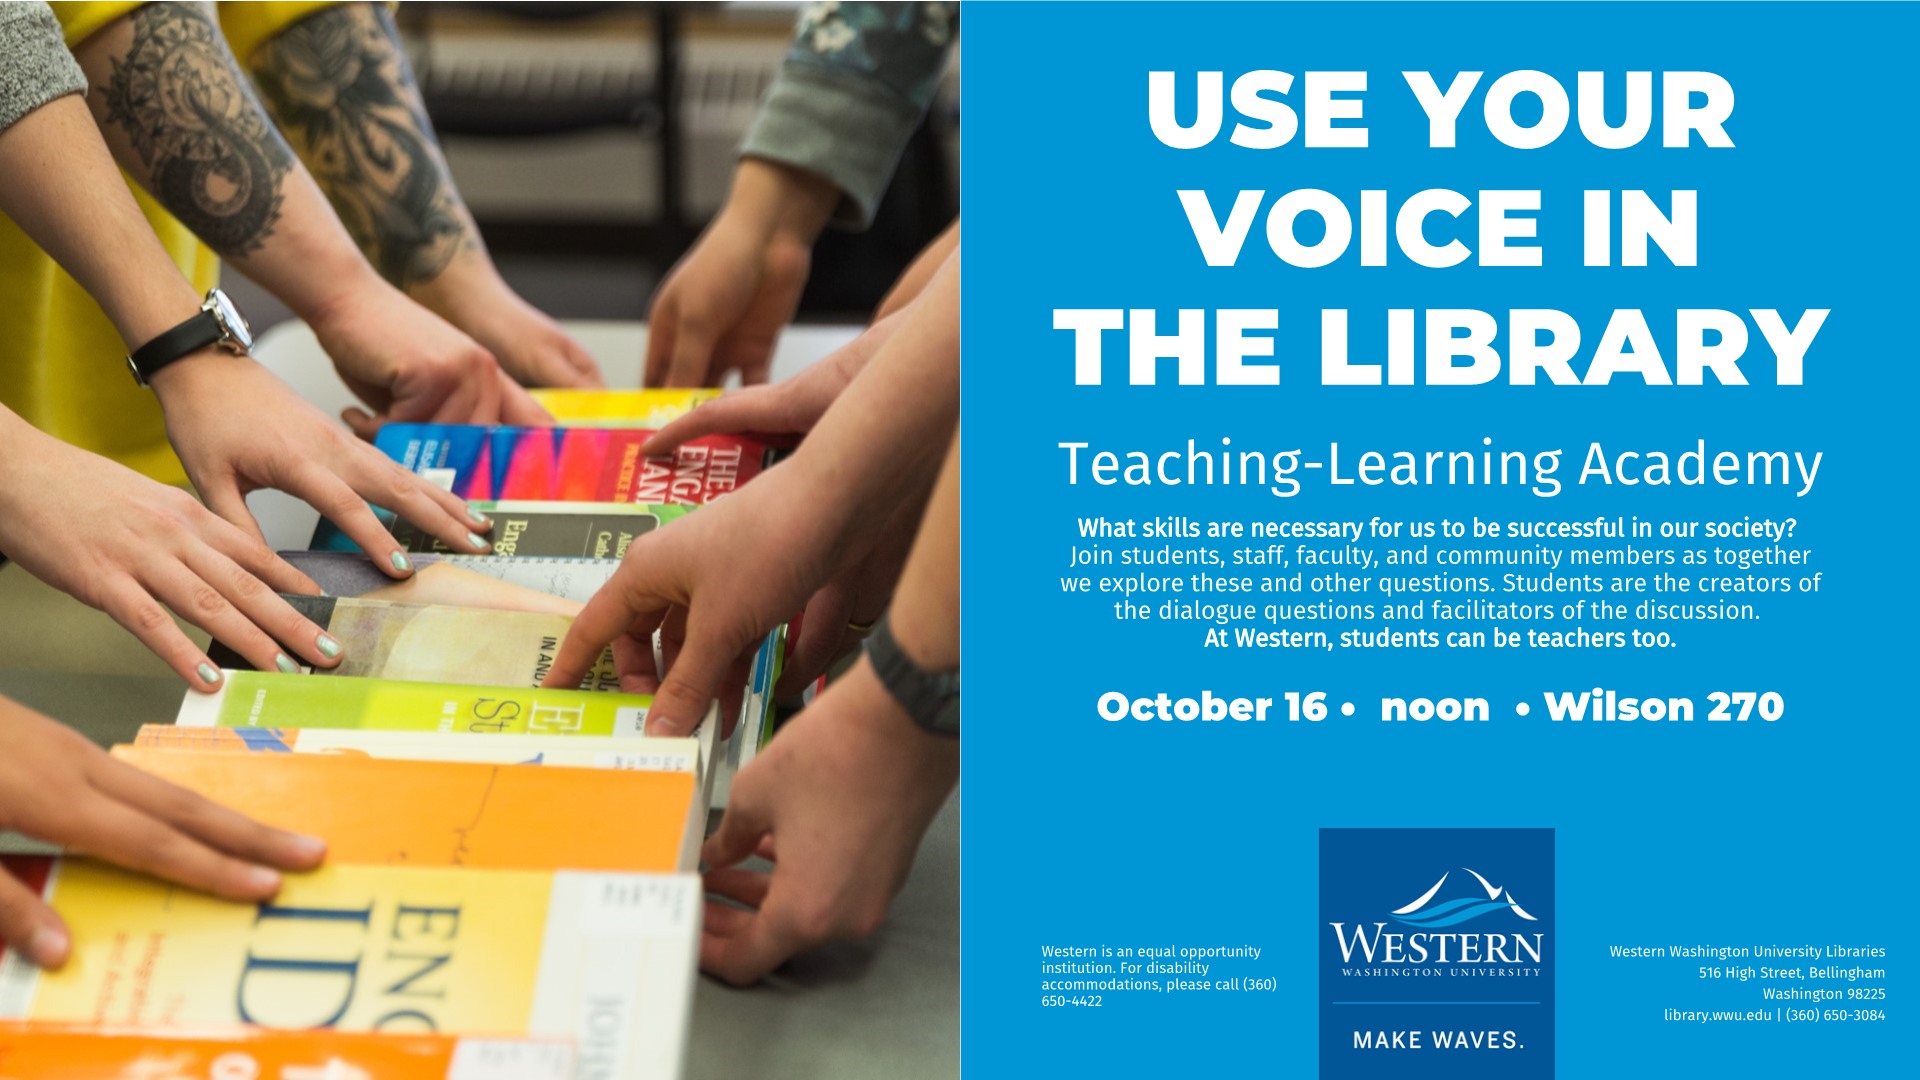 The TLA dialogues start next week - sign up now!